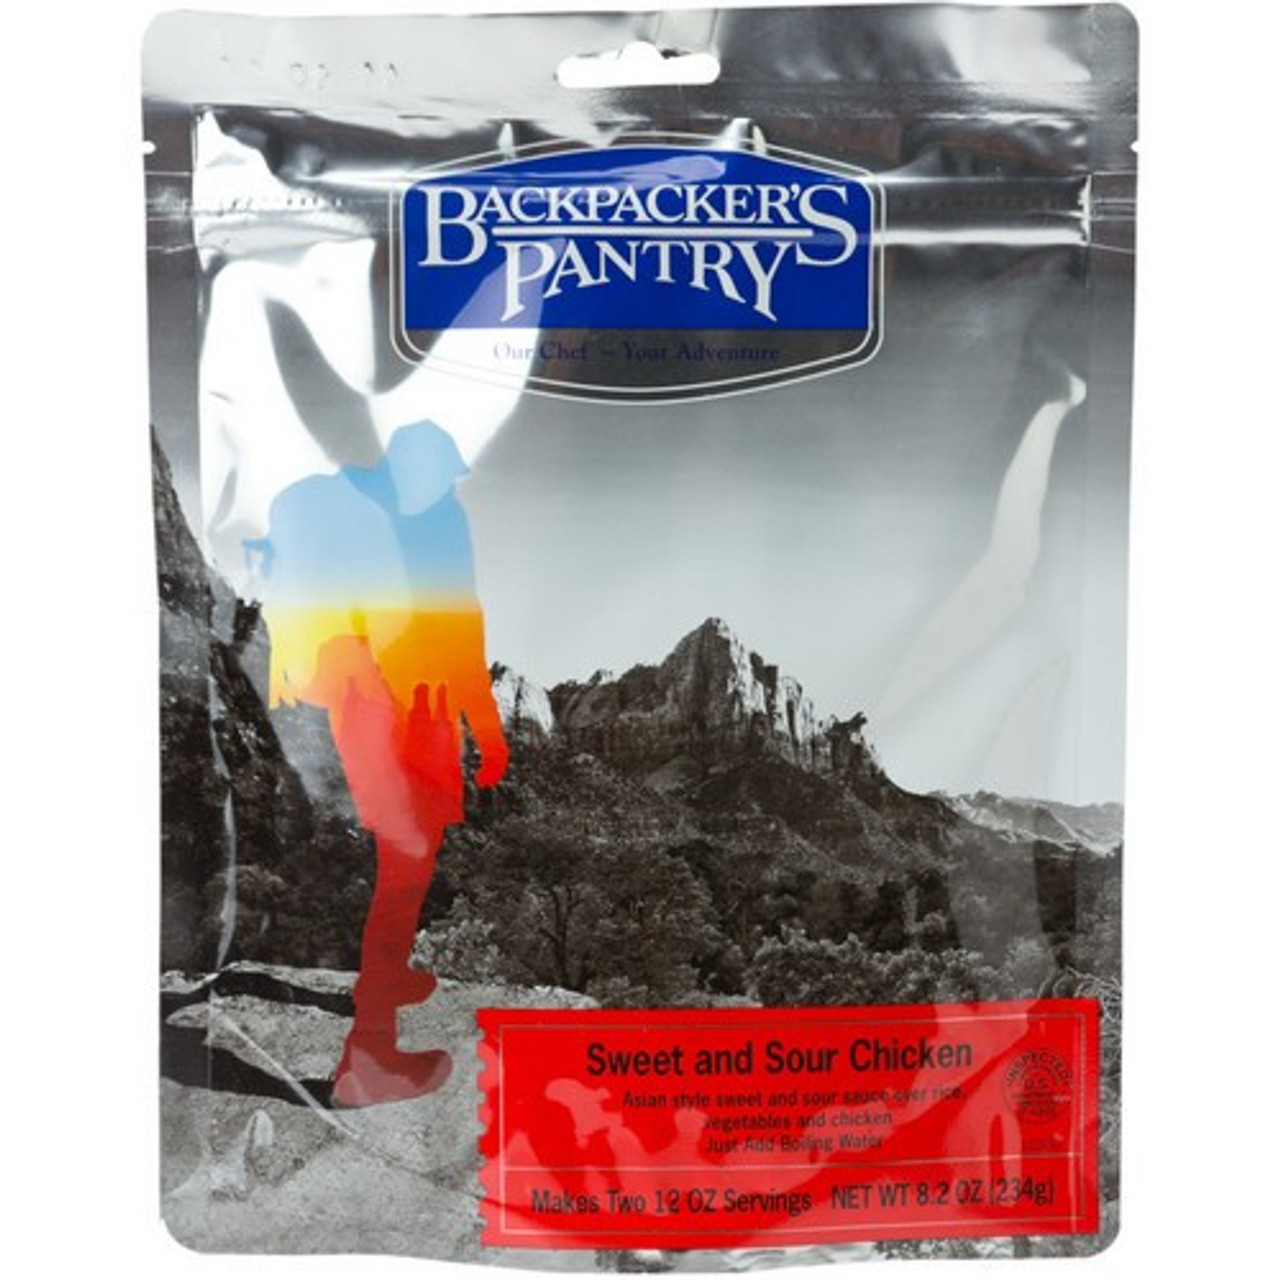 Backpacker's Pantry Sweet and Sour Chicken Pouch